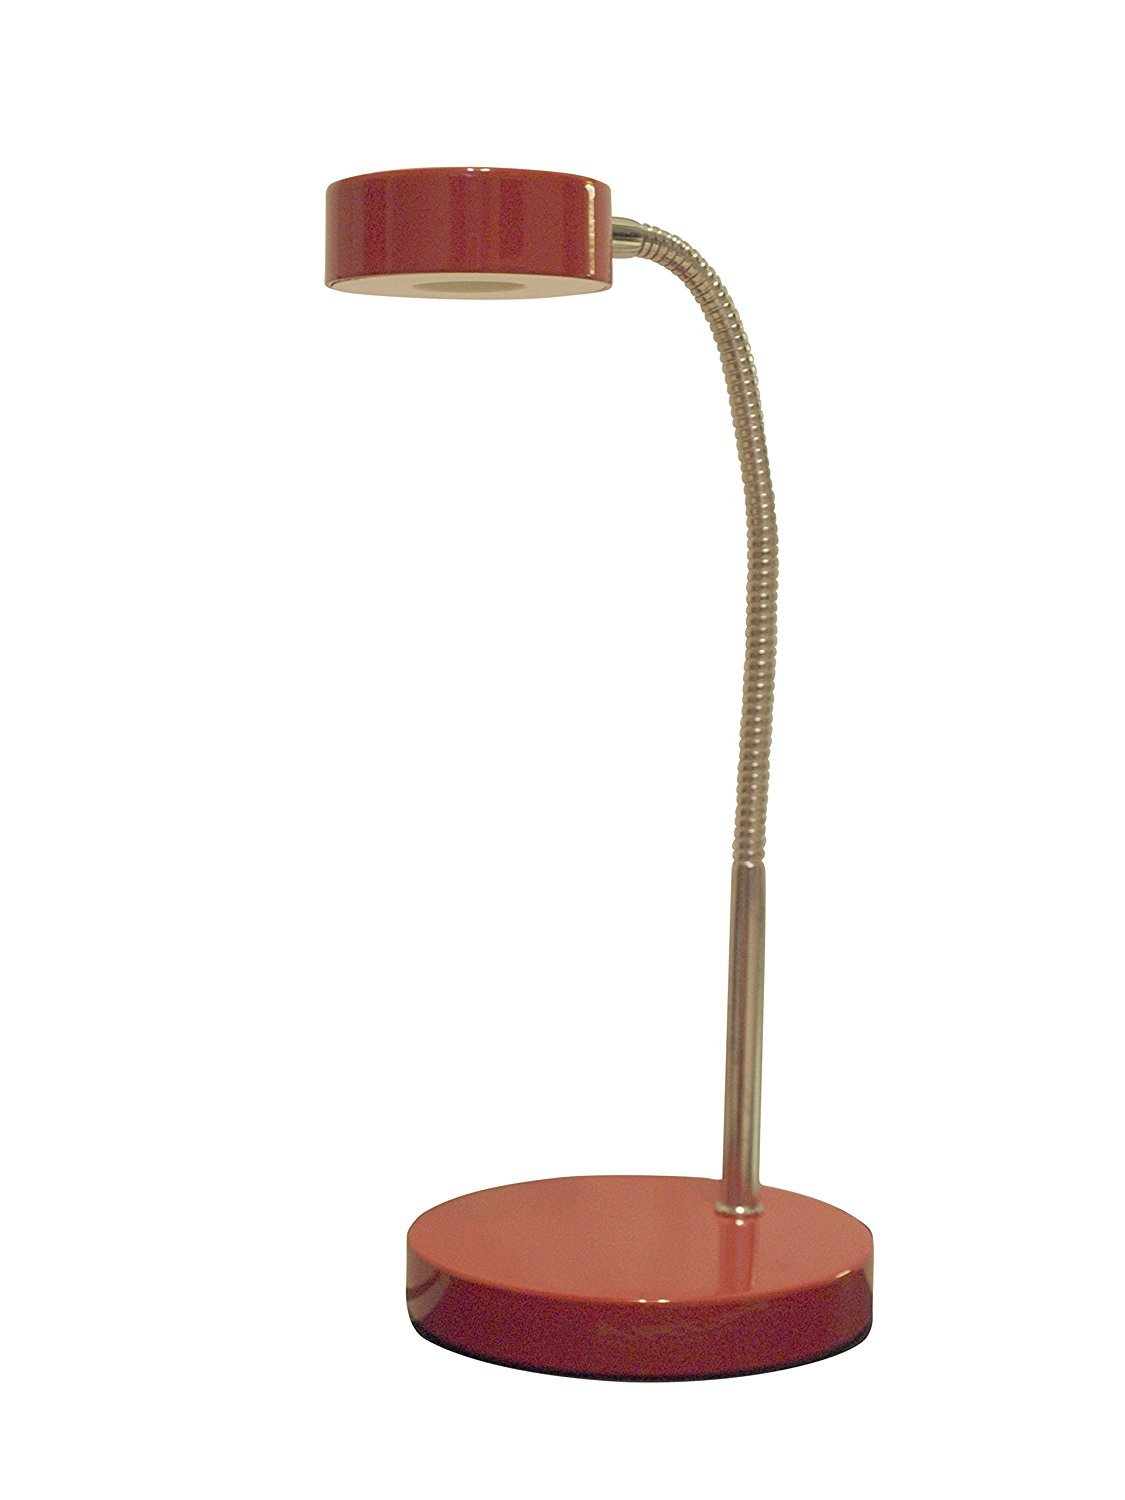 Desk Lamp LED Office Dorm Study School Bedside Bulb Lamps Home Work Modern Light Red